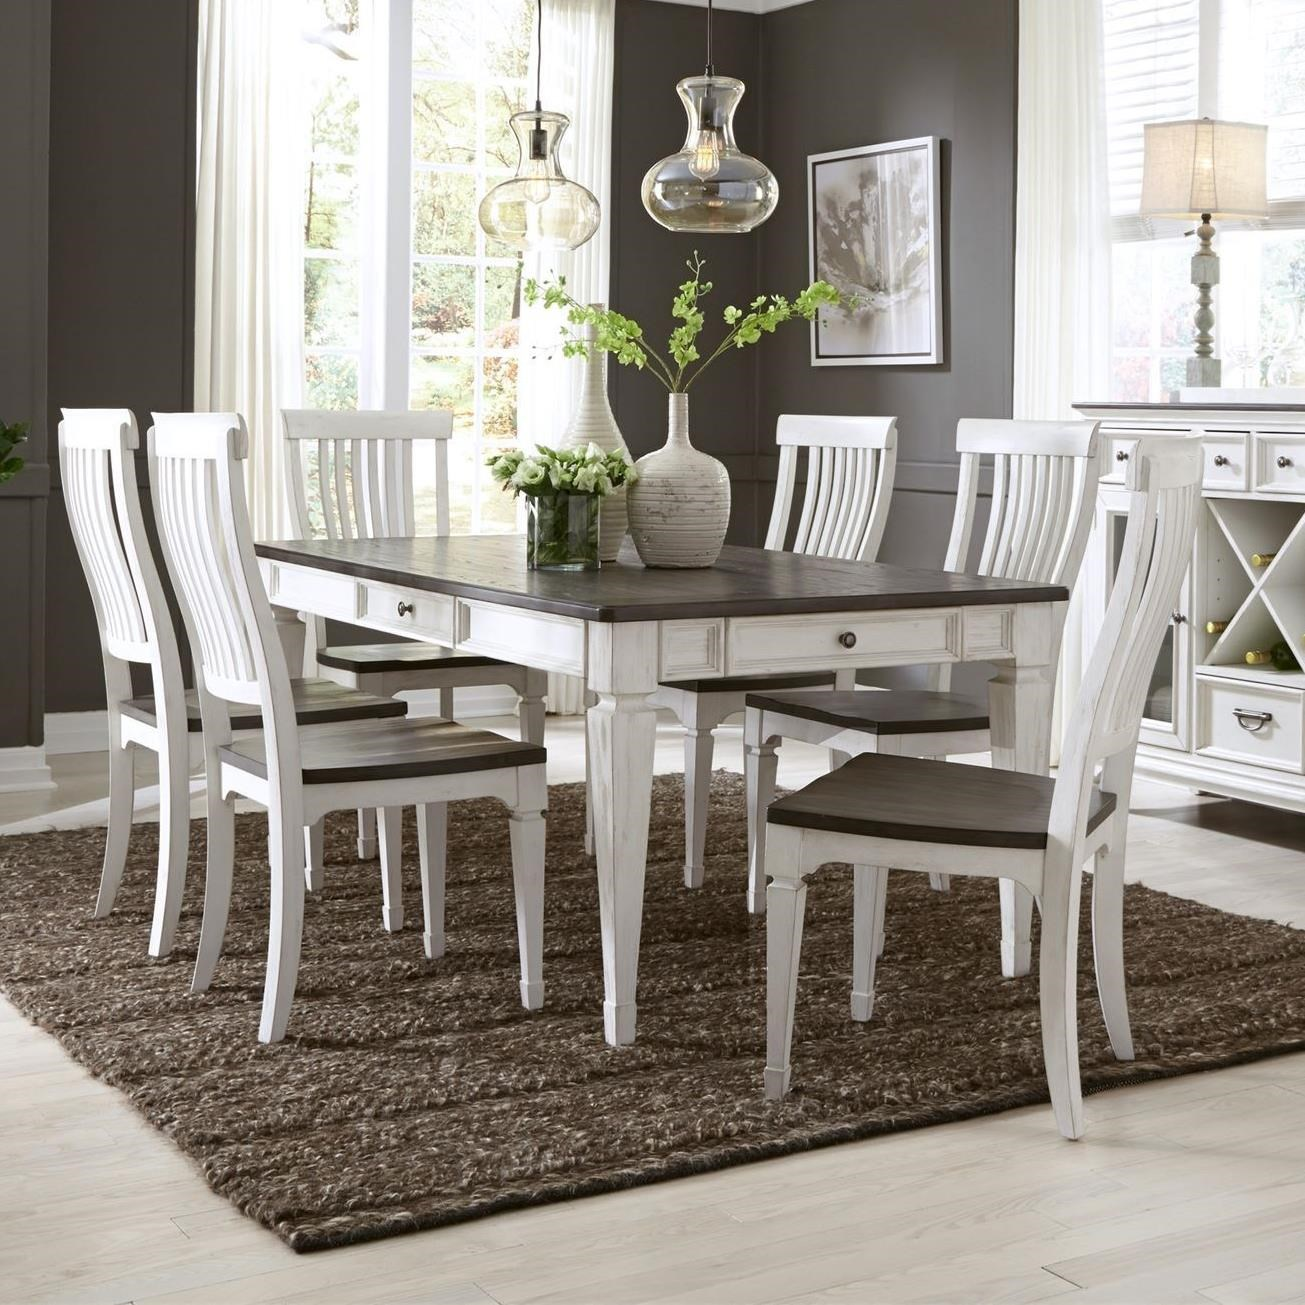 Allyson Park 7 Piece Rectangular Table Set  by Liberty Furniture at Catalog Outlet